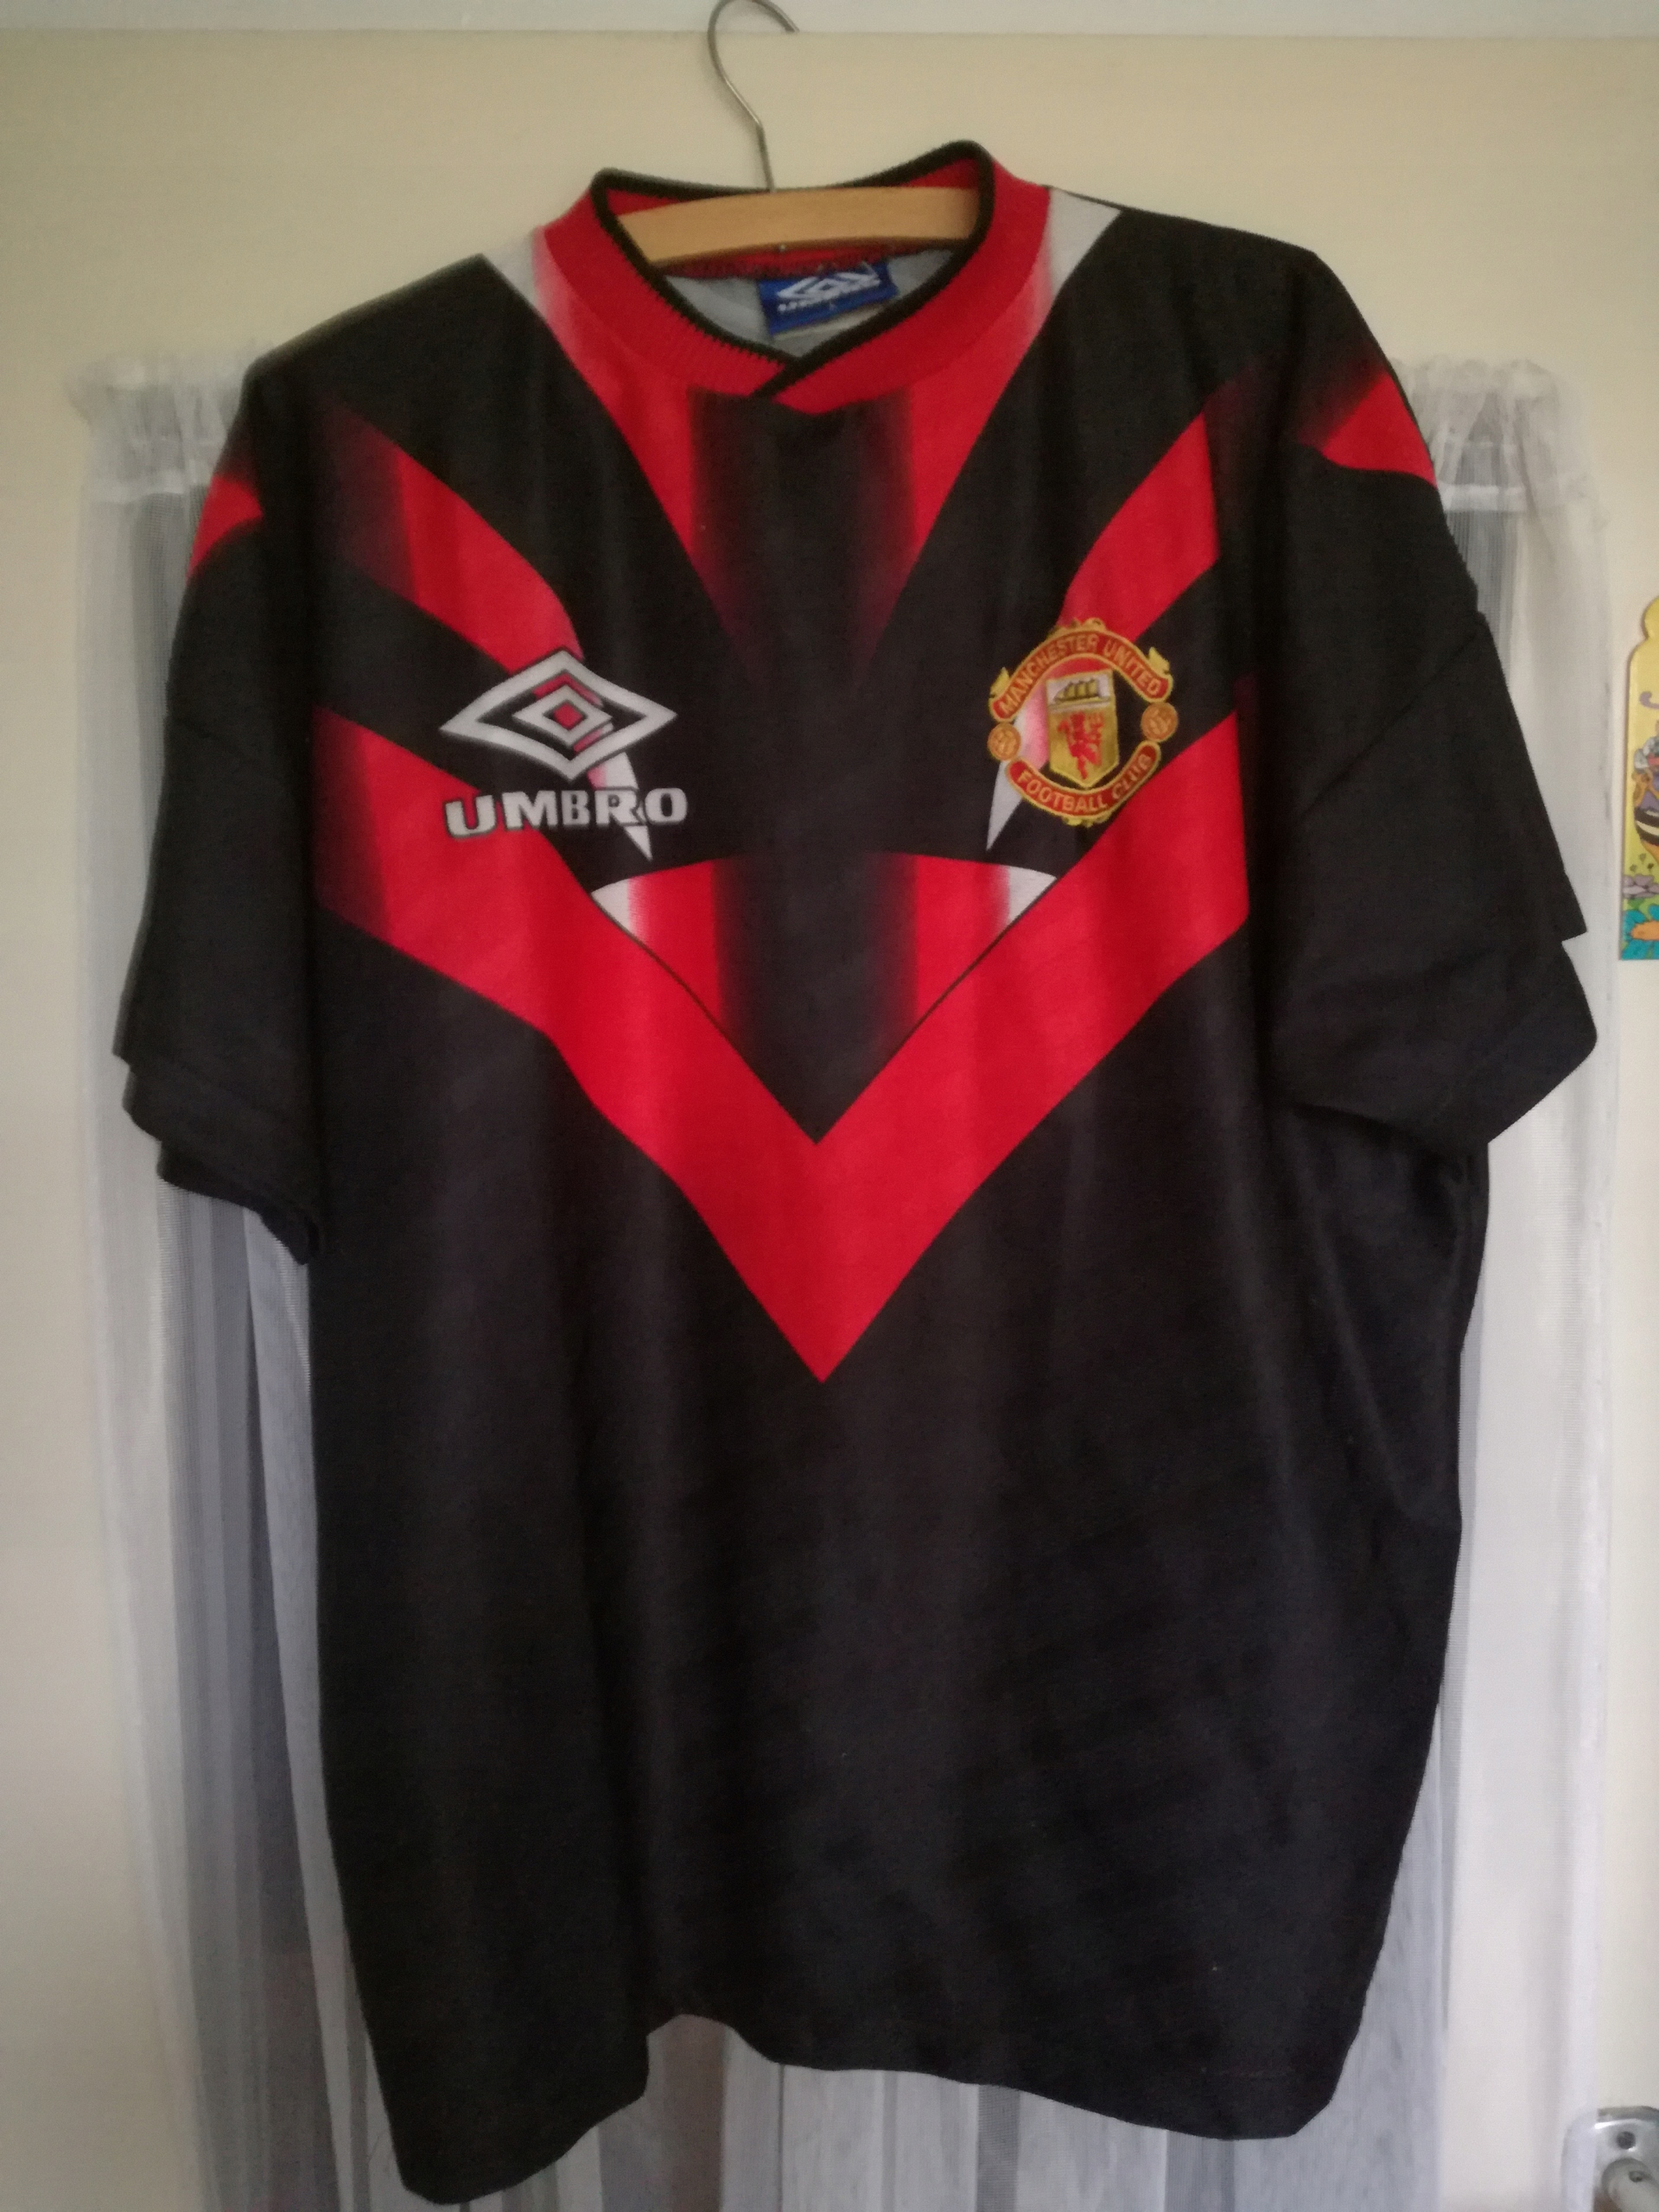 UMBRO MANCHESTER UNITED PROTOTYP L IDEAL